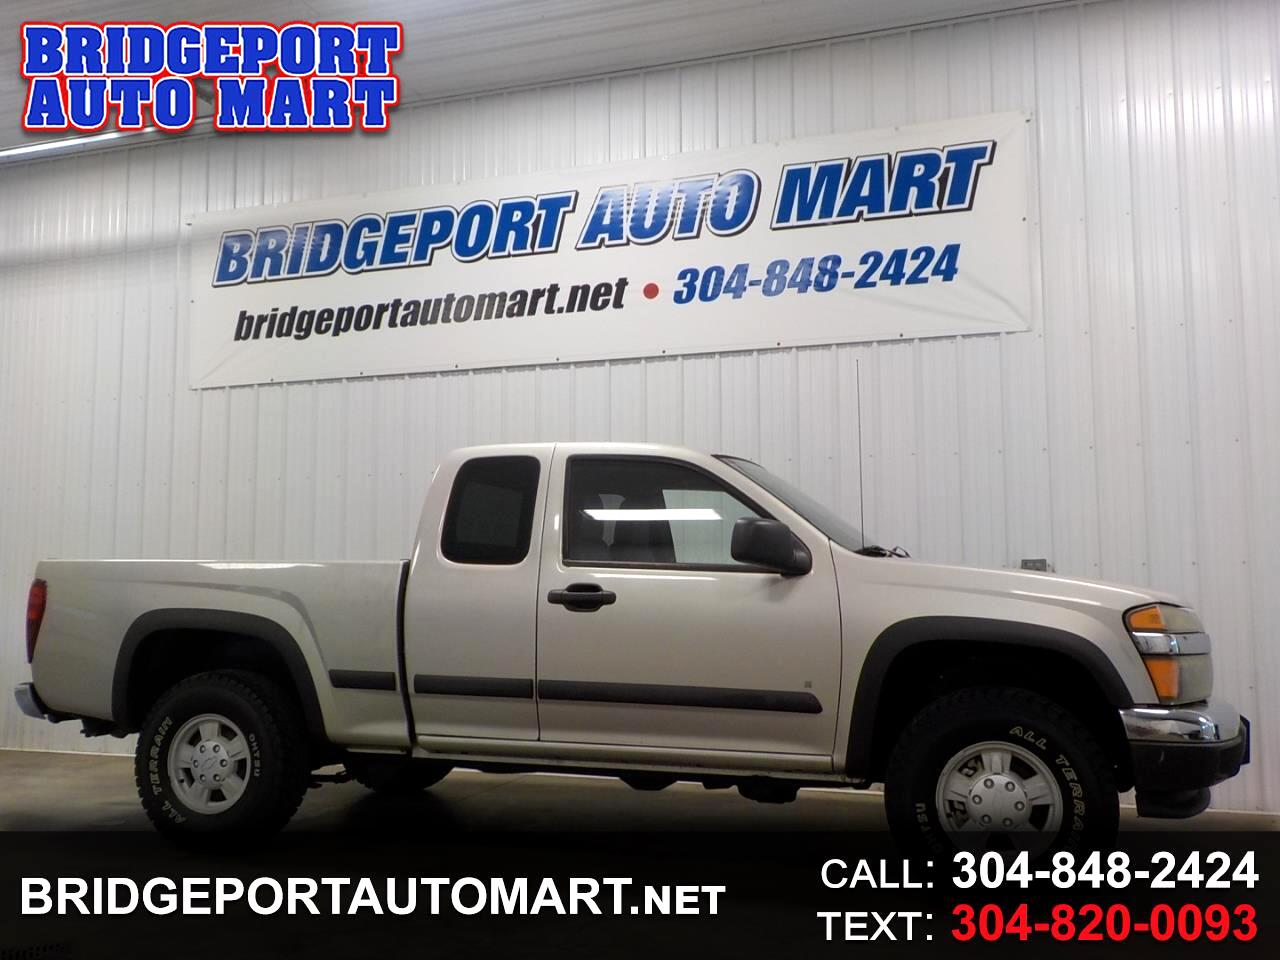 "2006 Chevrolet Colorado Ext Cab 125.9"" WB 4WD LT w/1LT"